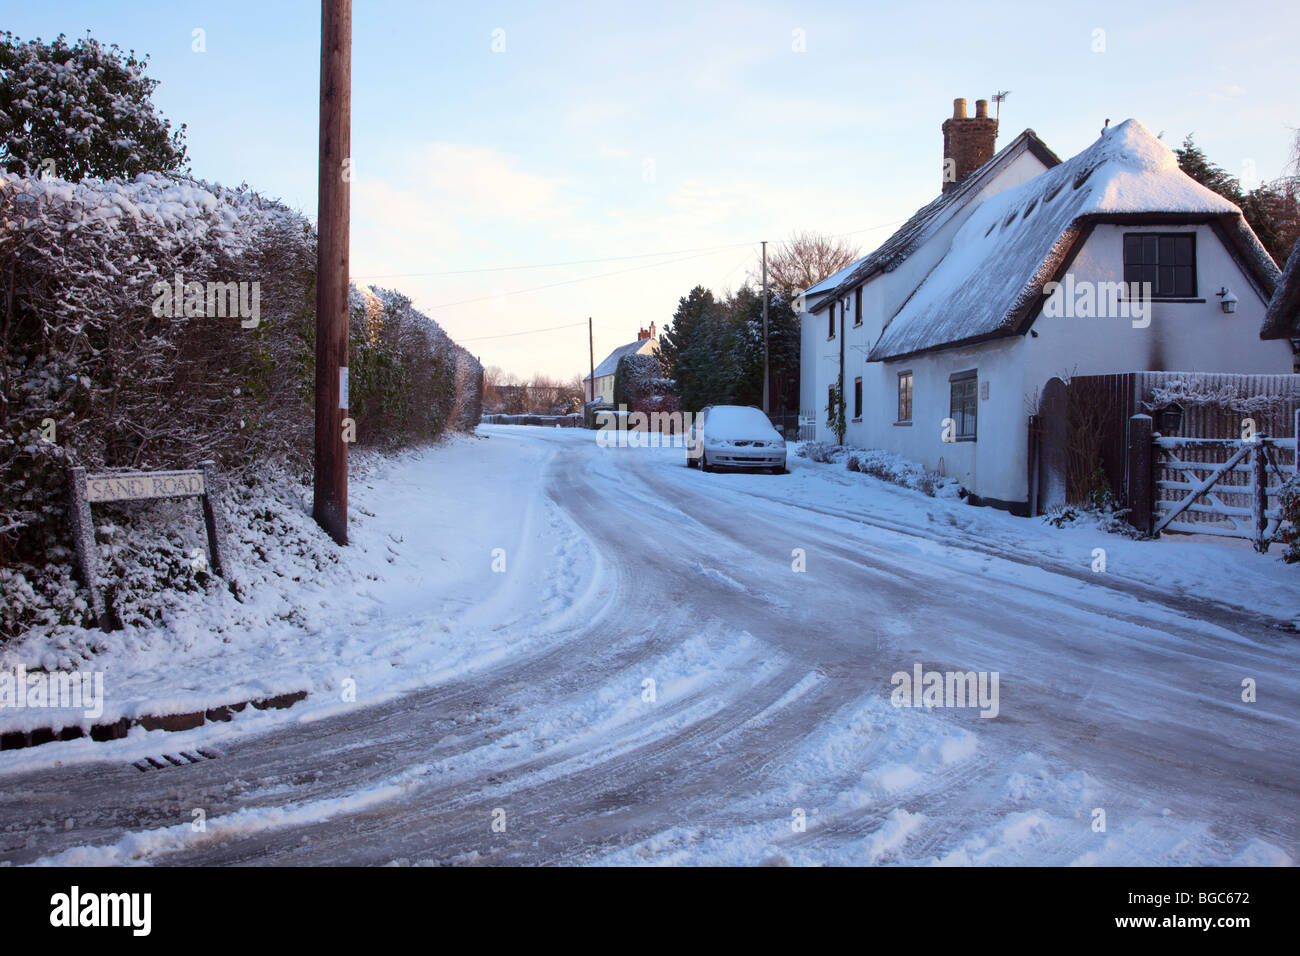 Snow covered road junction Great Gransden Cambridgeshire - Stock Image